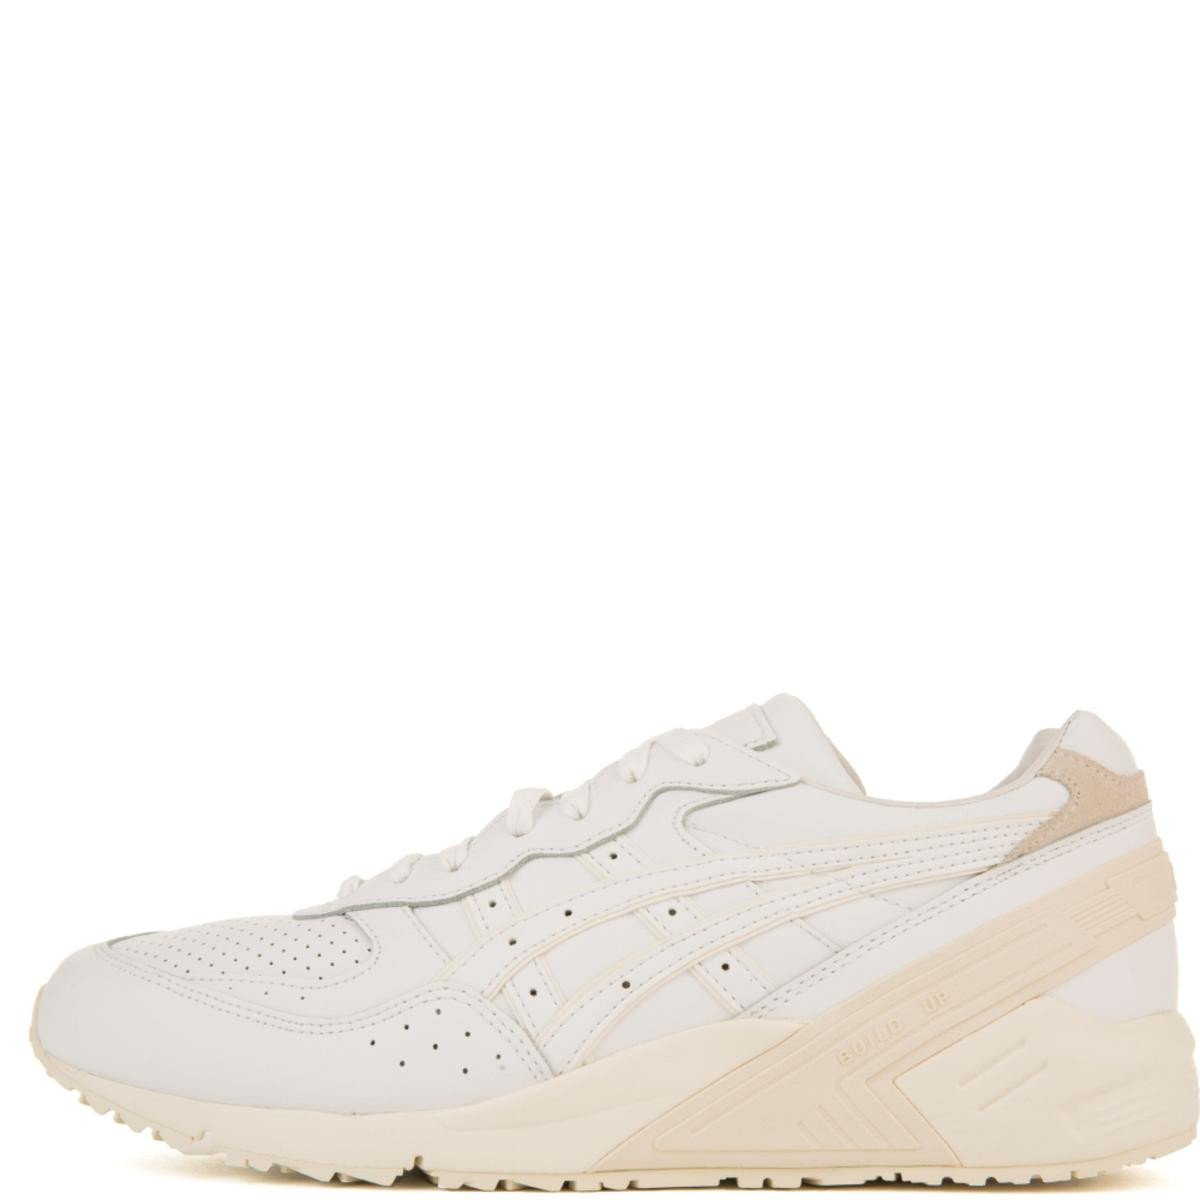 asics for Men: Gel-Sight White/White Sneakers